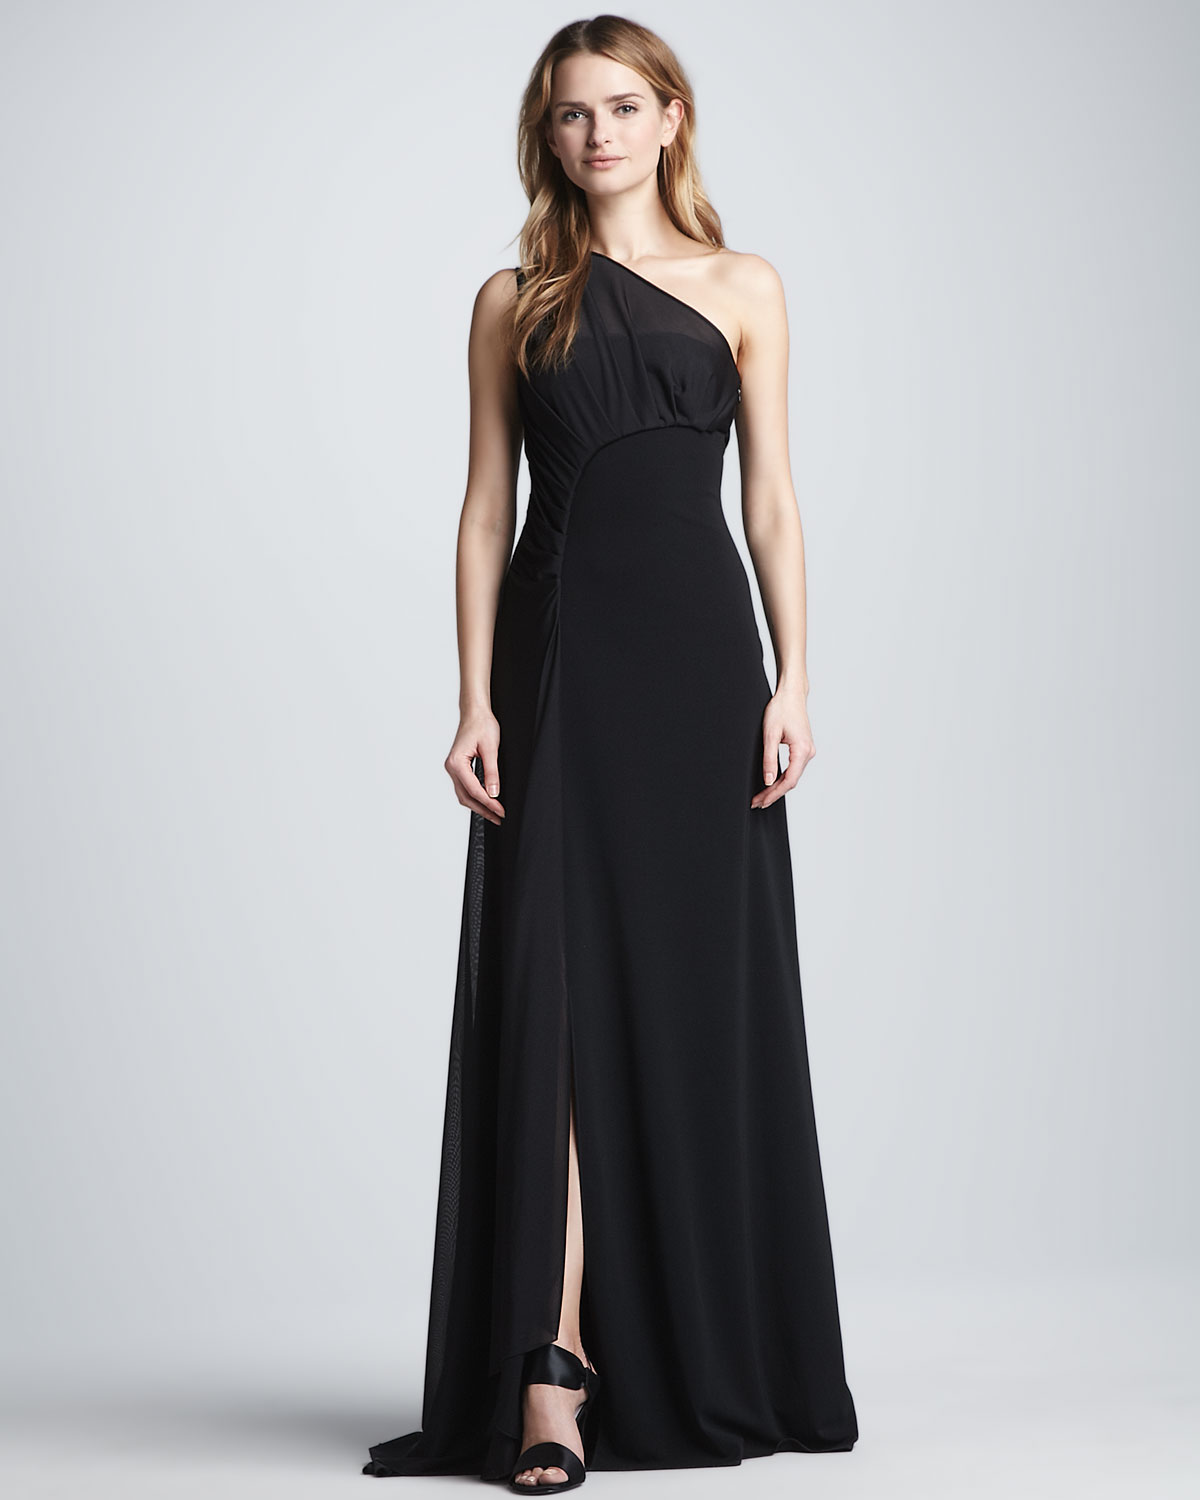 Halston One-Shoulder Gown with Sheer Overlay in Black